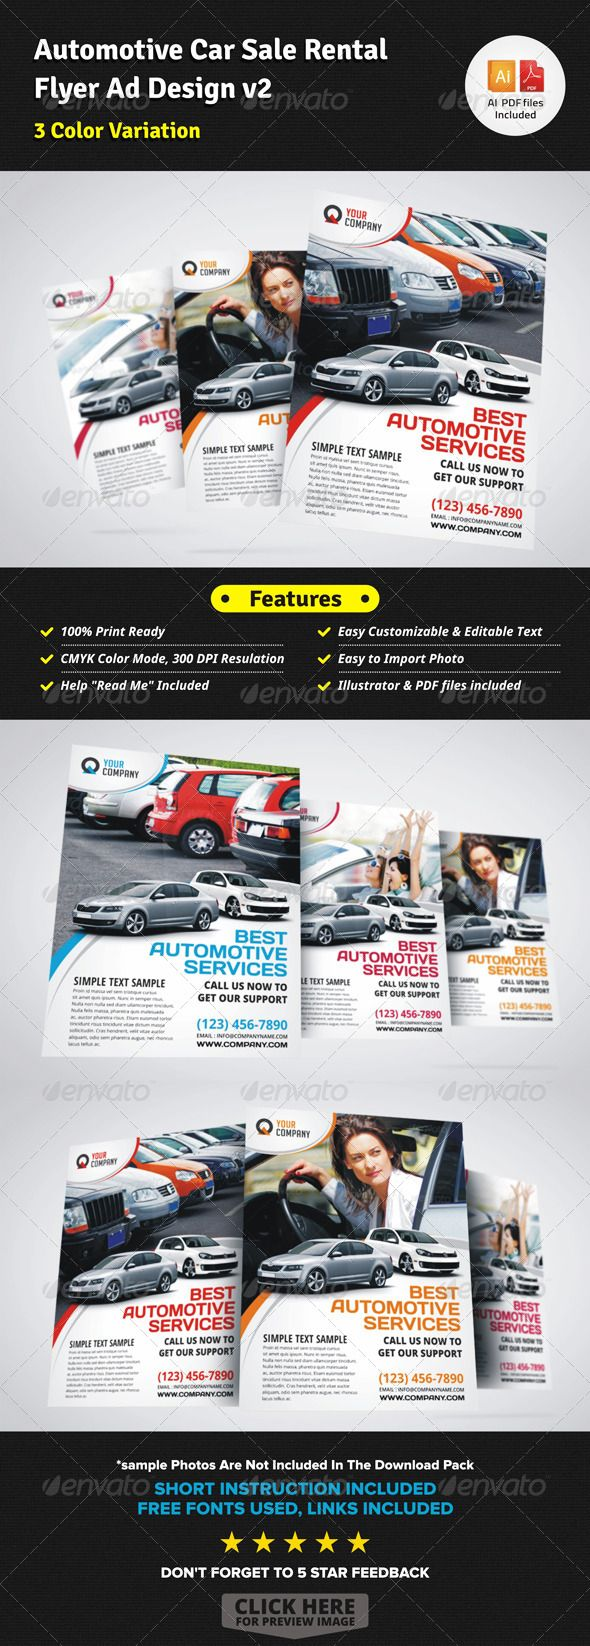 Automotive Car Sale Rental Flyer Ad v2 — Vector EPS #magazine ad #owner • Available here → https://graphicriver.net/item/automotive-car-sale-rental-flyer-ad-v2/6009249?ref=pxcr